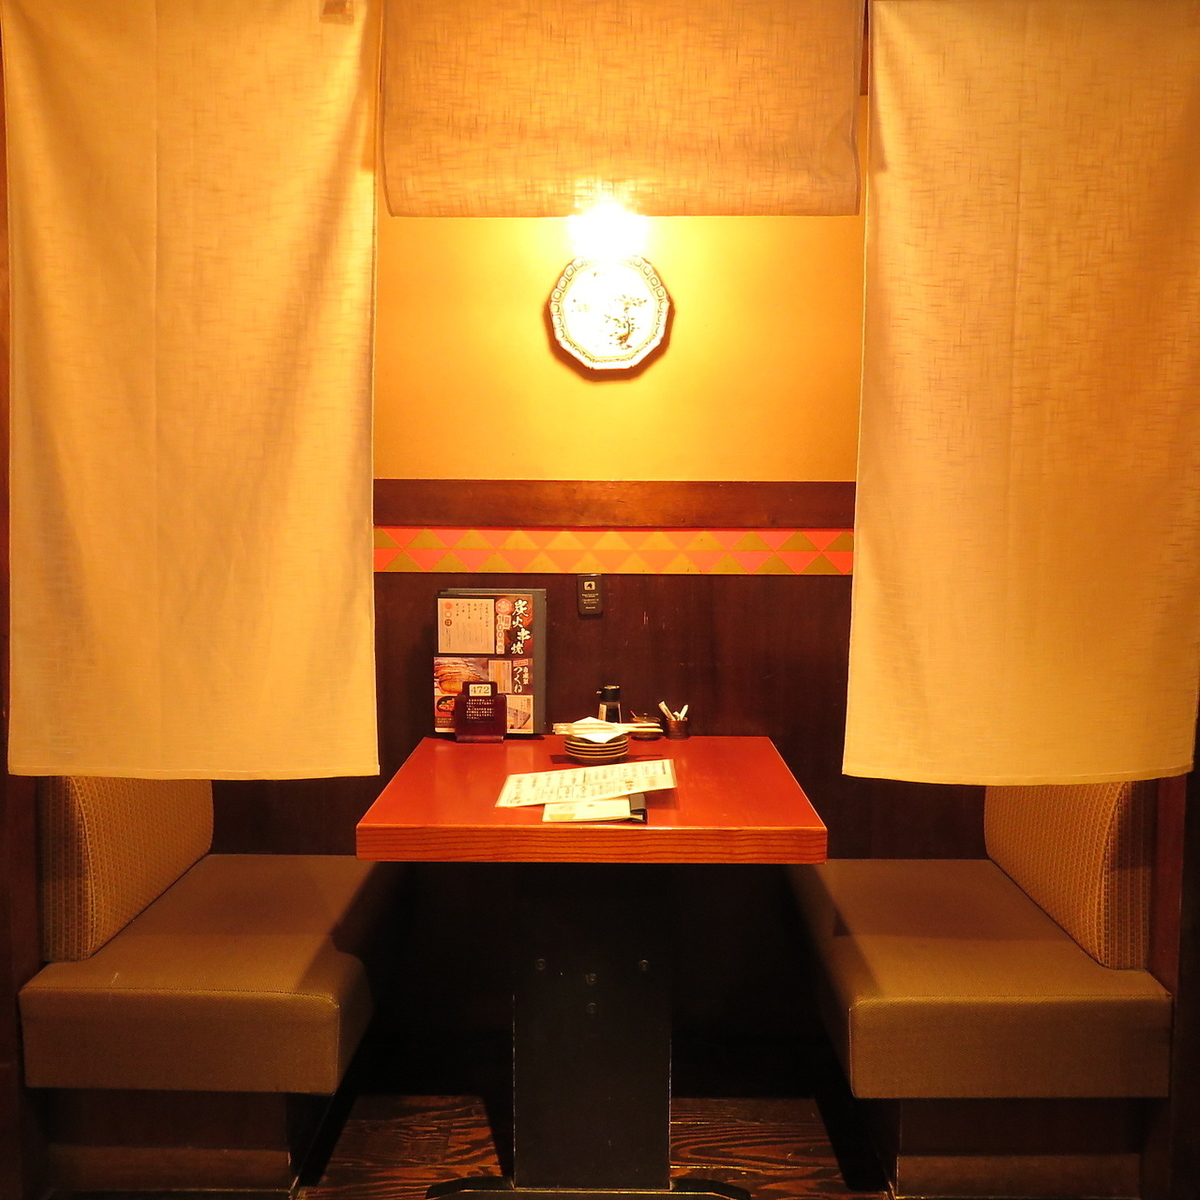 You can relax relaxingly with spacious table seats in a private room partitioned by goodwill.